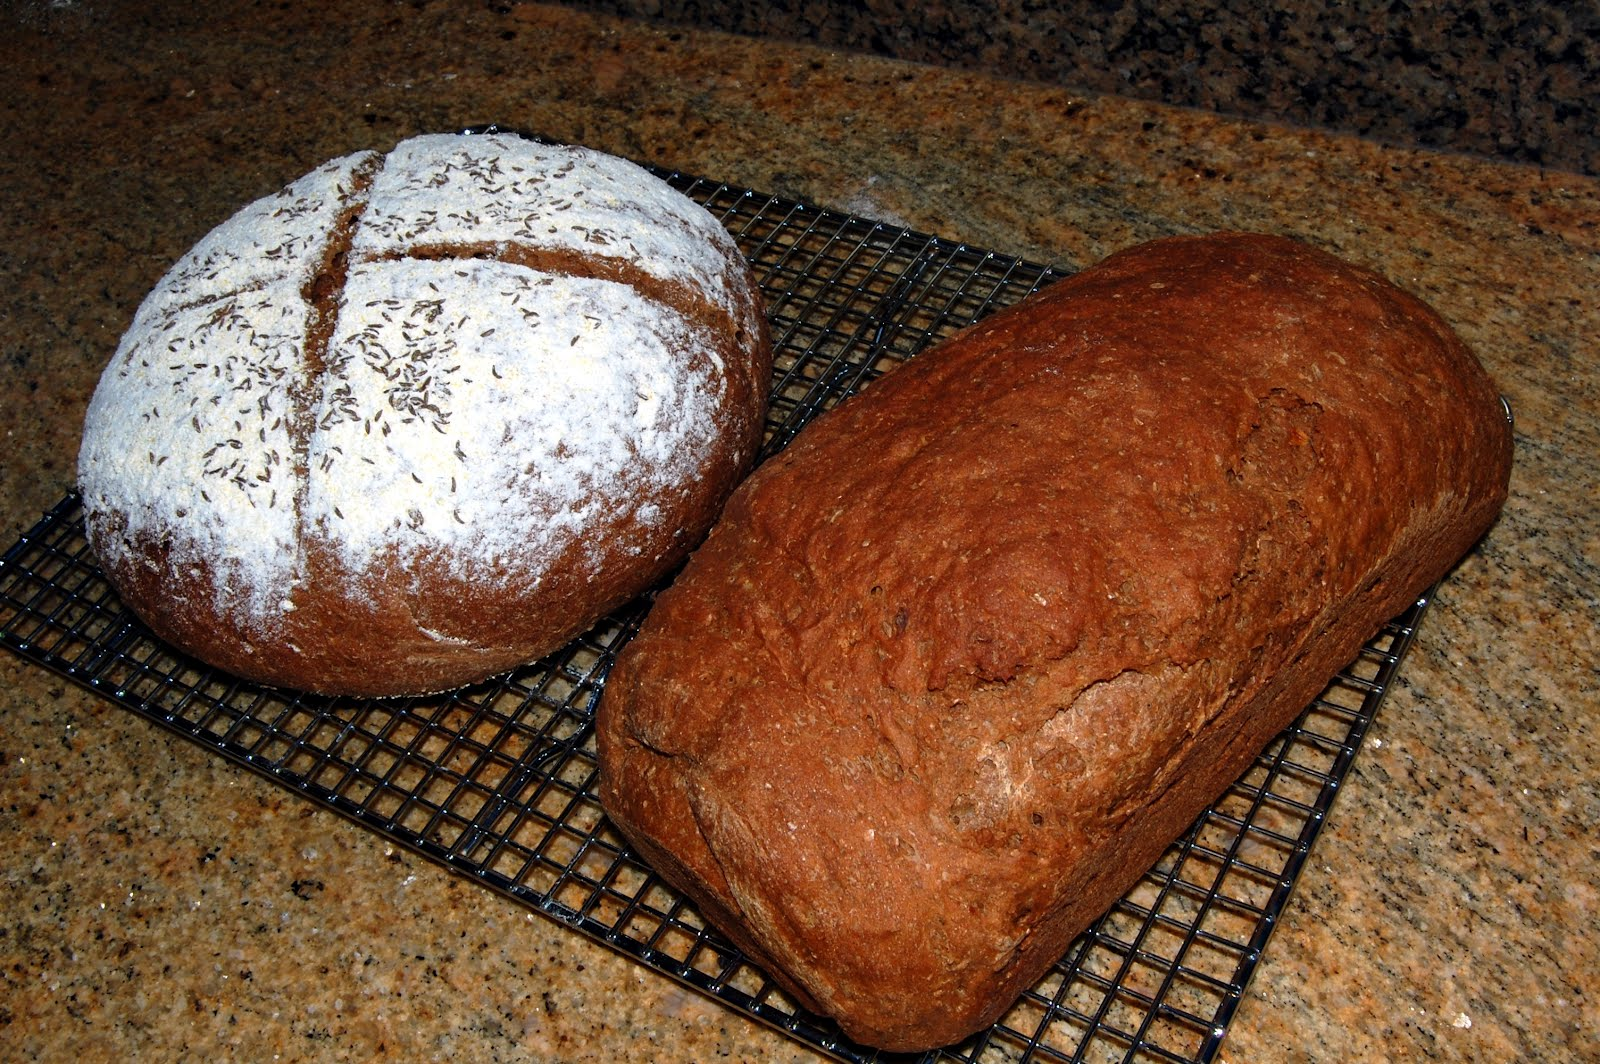 breadbasketcase: Russian Black Bread